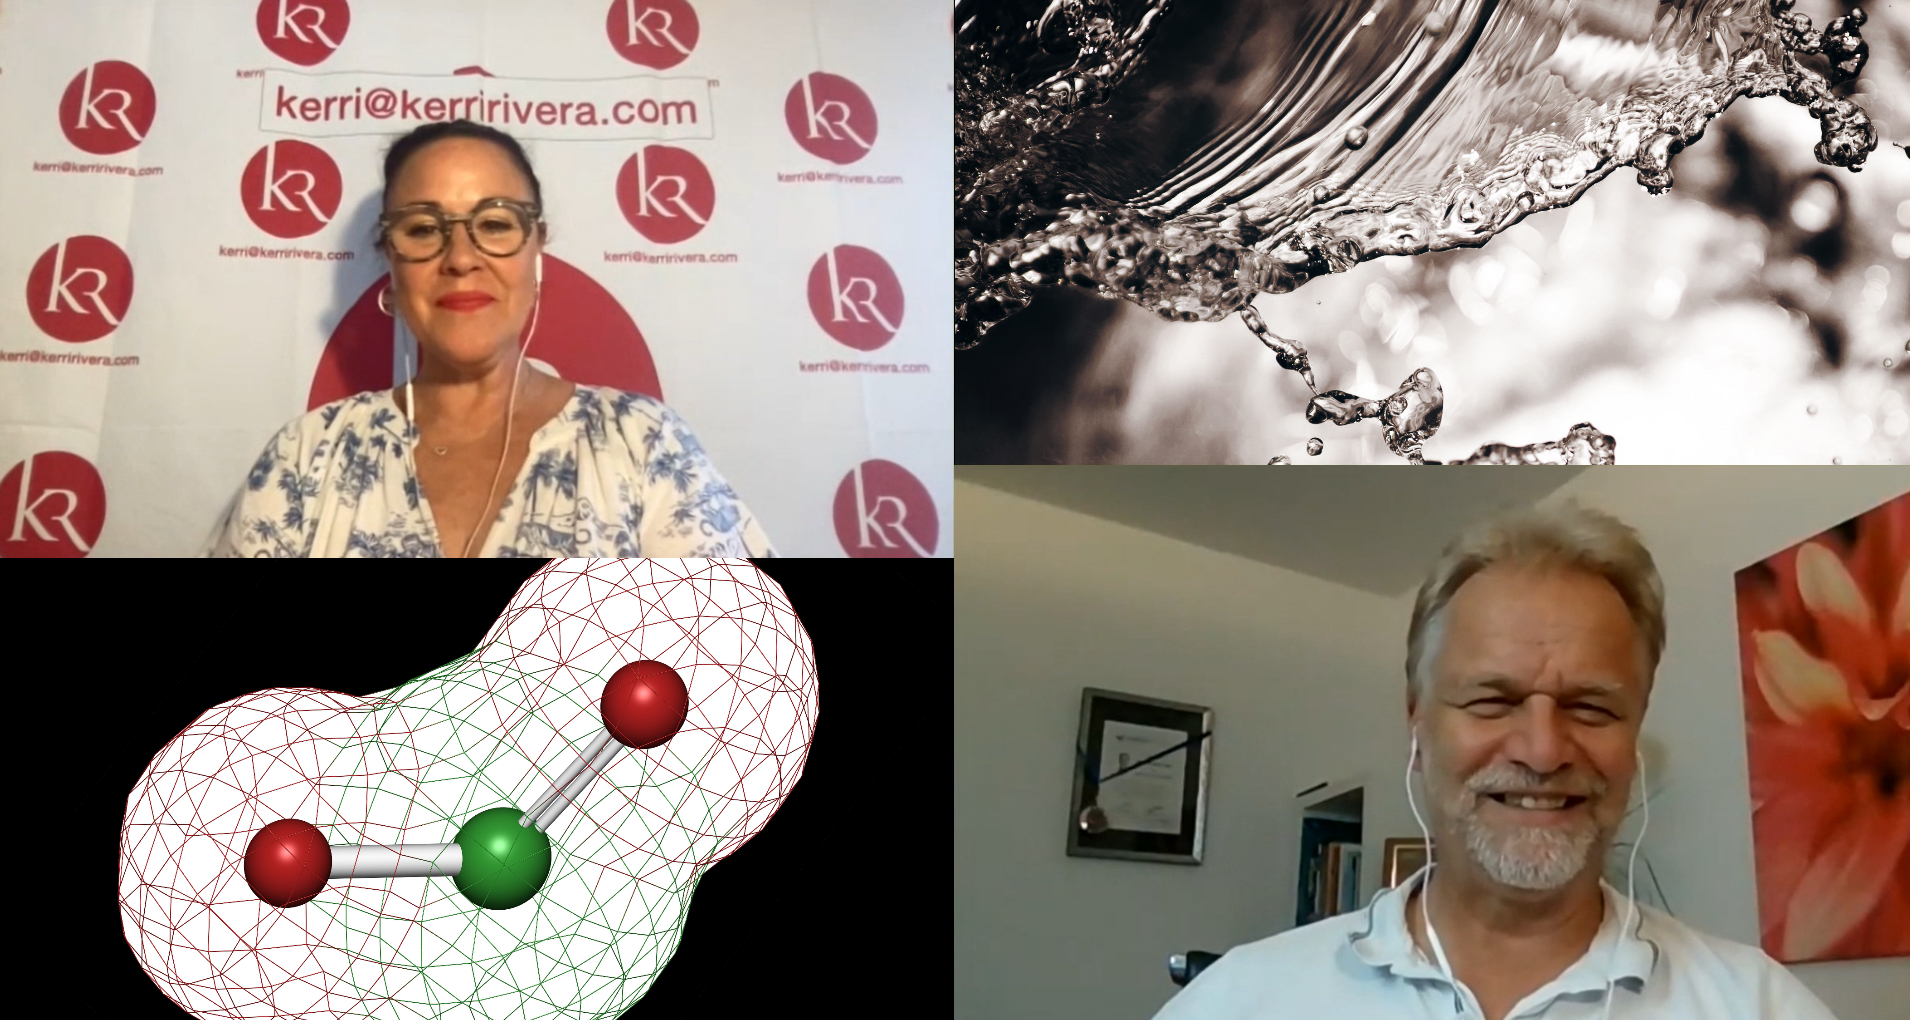 Dr. Andreas Kalcker's Chlorine Dioxide Study Is Out & The Results Are Incredible! (Video)